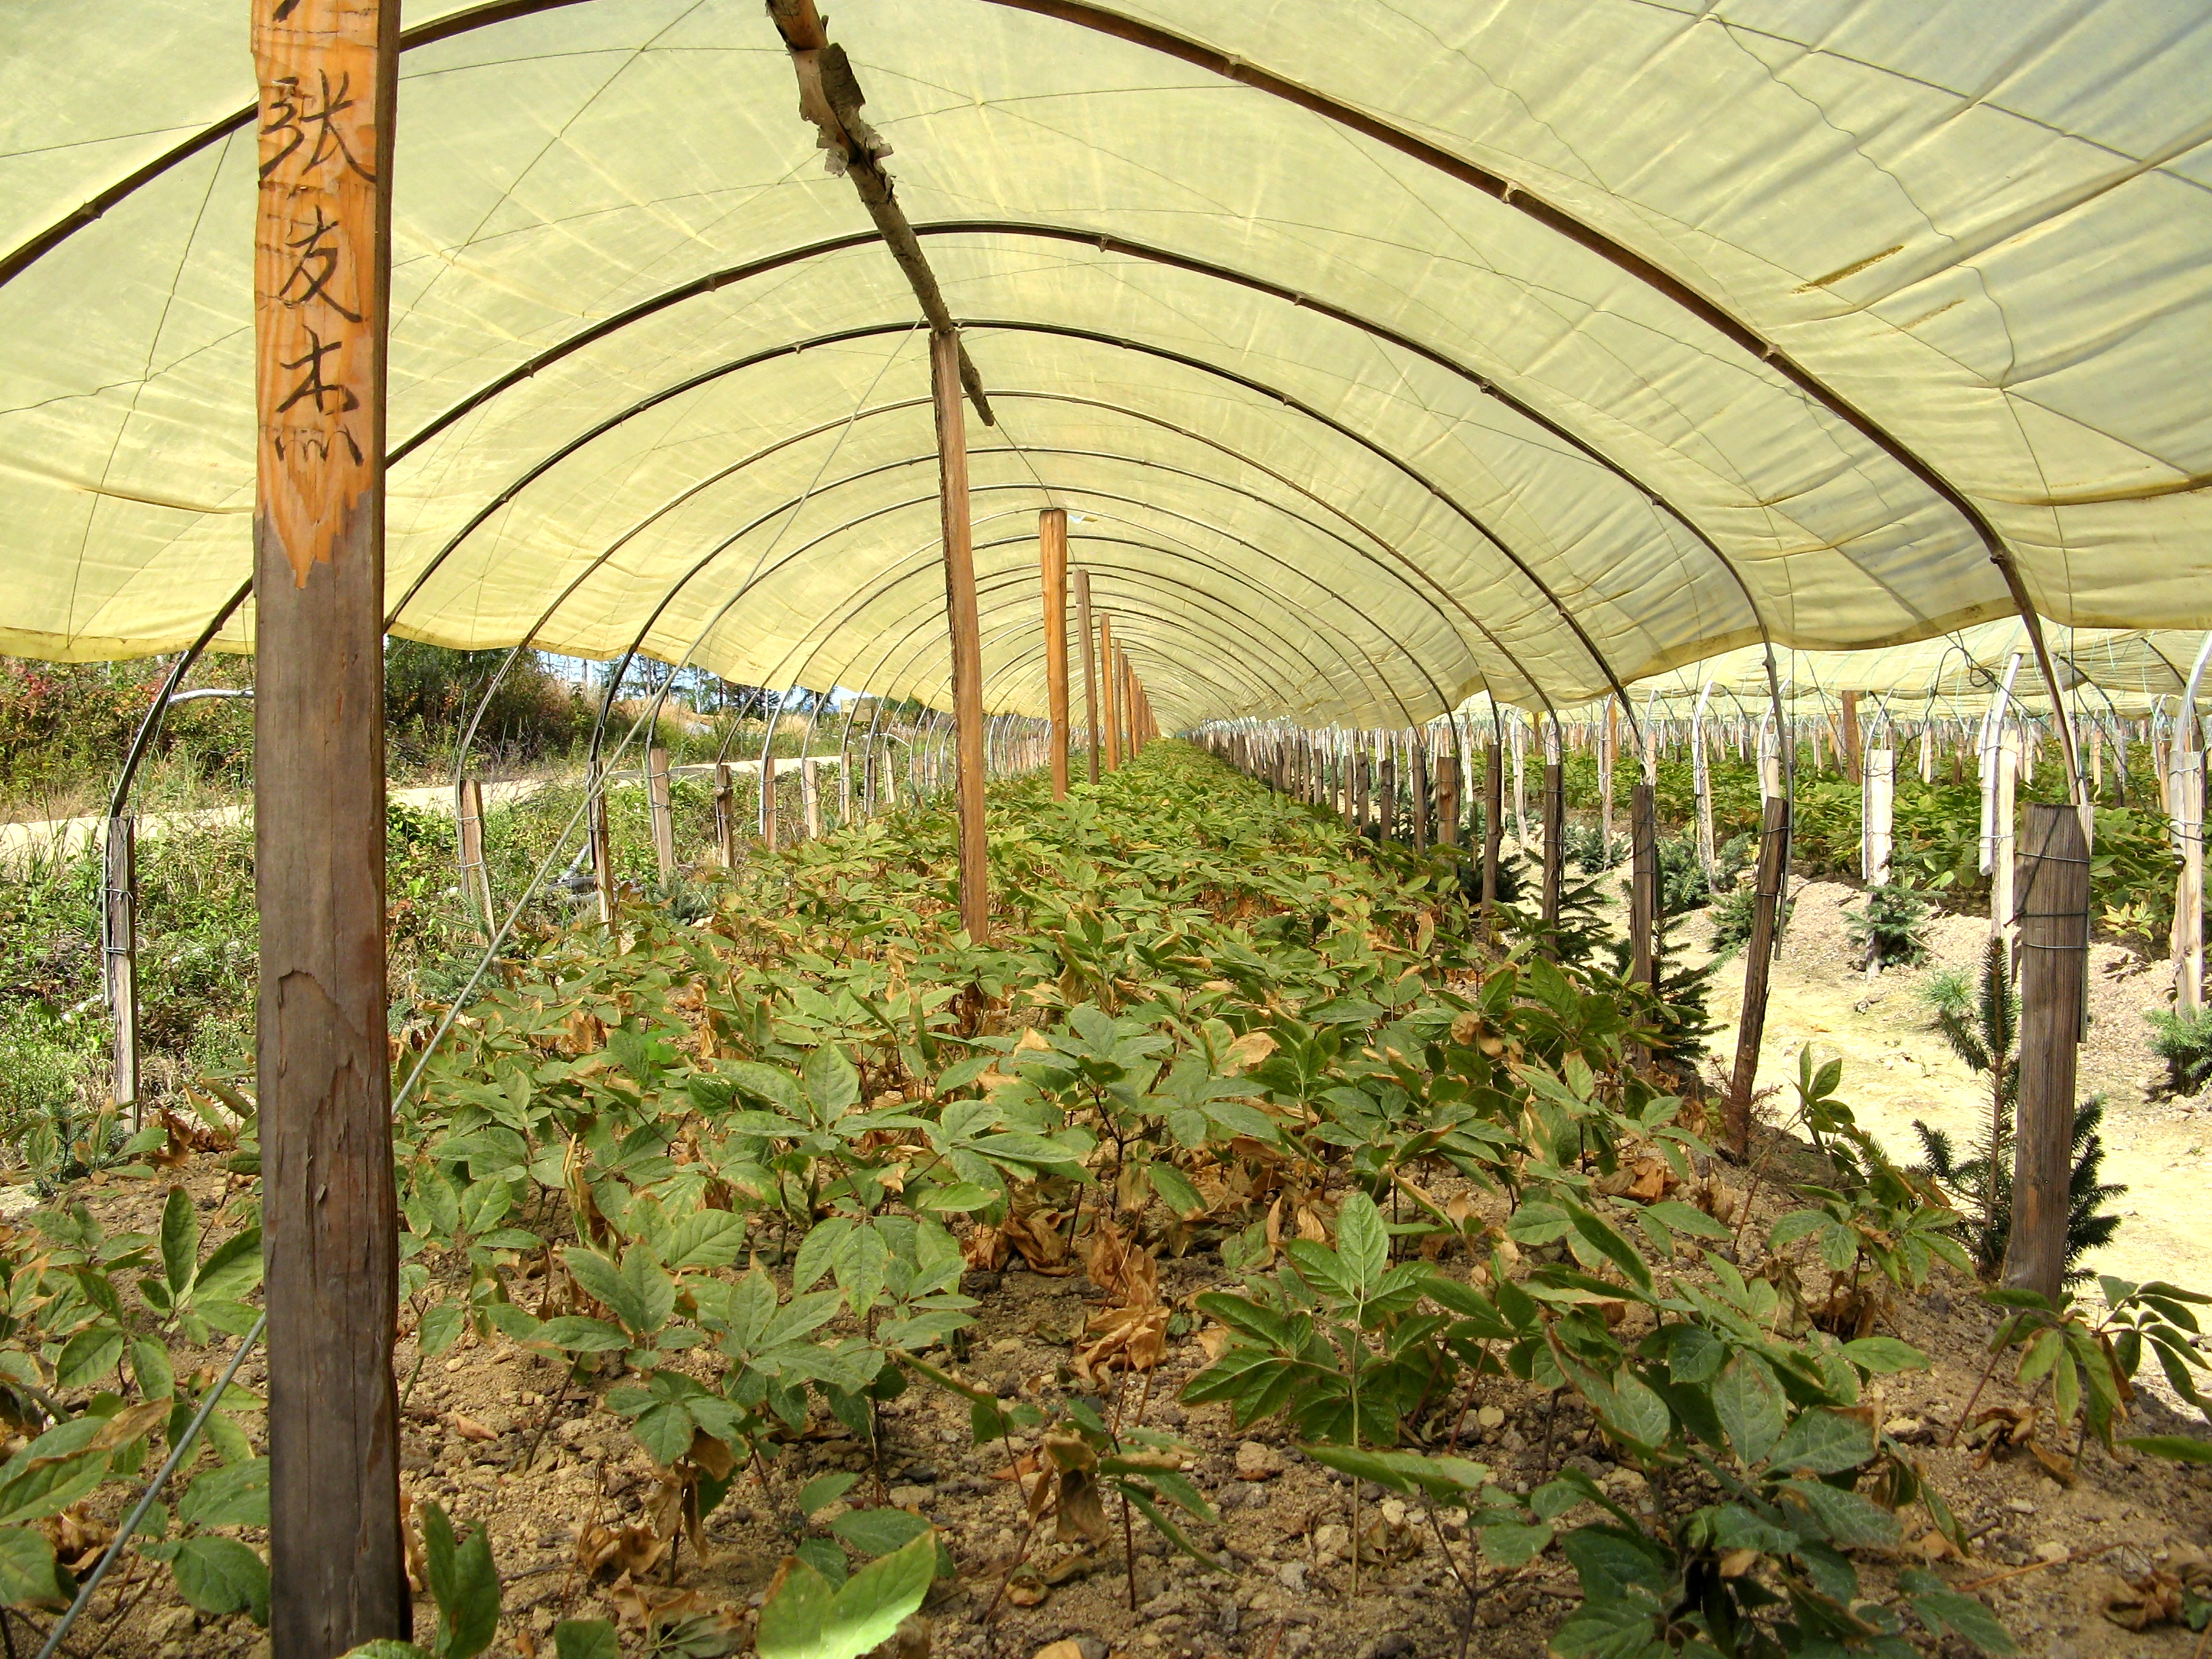 Panax ginseng plants in hoop house Jilin Provence China